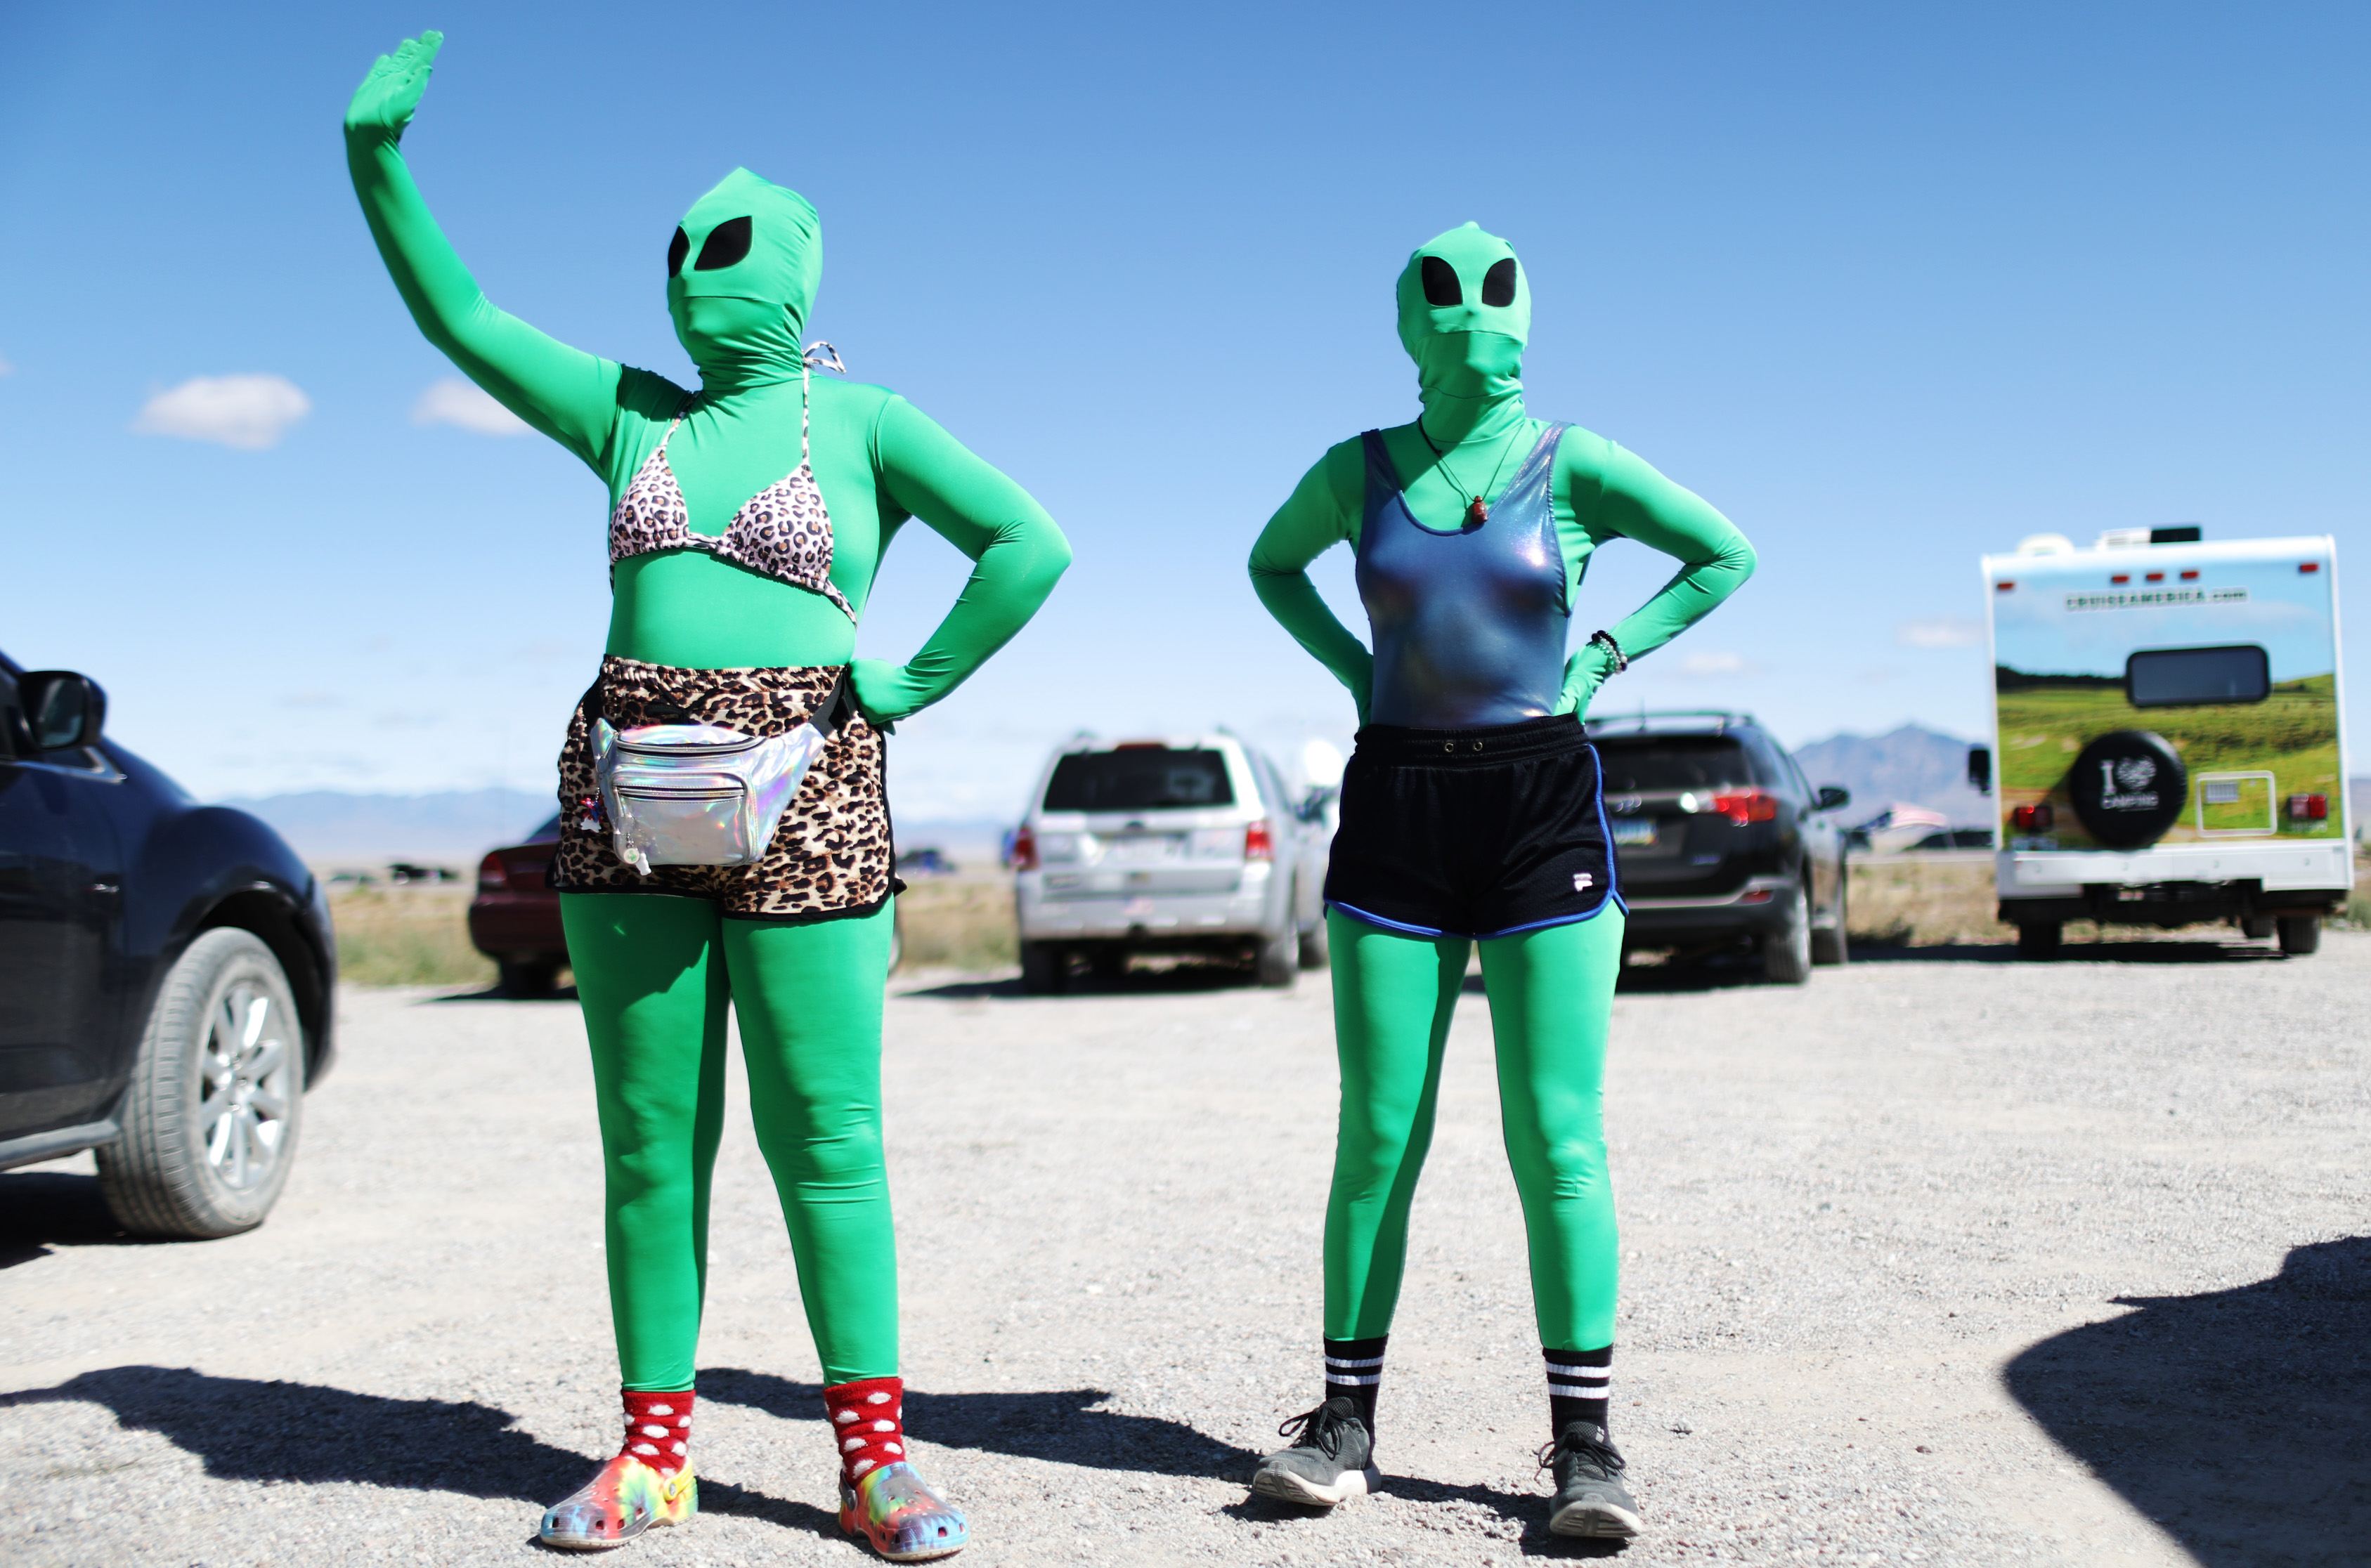 RACHEL, NEVADA - SEPTEMBER 20: Women are dressed as aliens at a 'Storm Area 51' spinoff event called 'Alienstock' on September 20, 2019 in Rachel, Nevada. (Photo by Mario Tama/Getty Images)